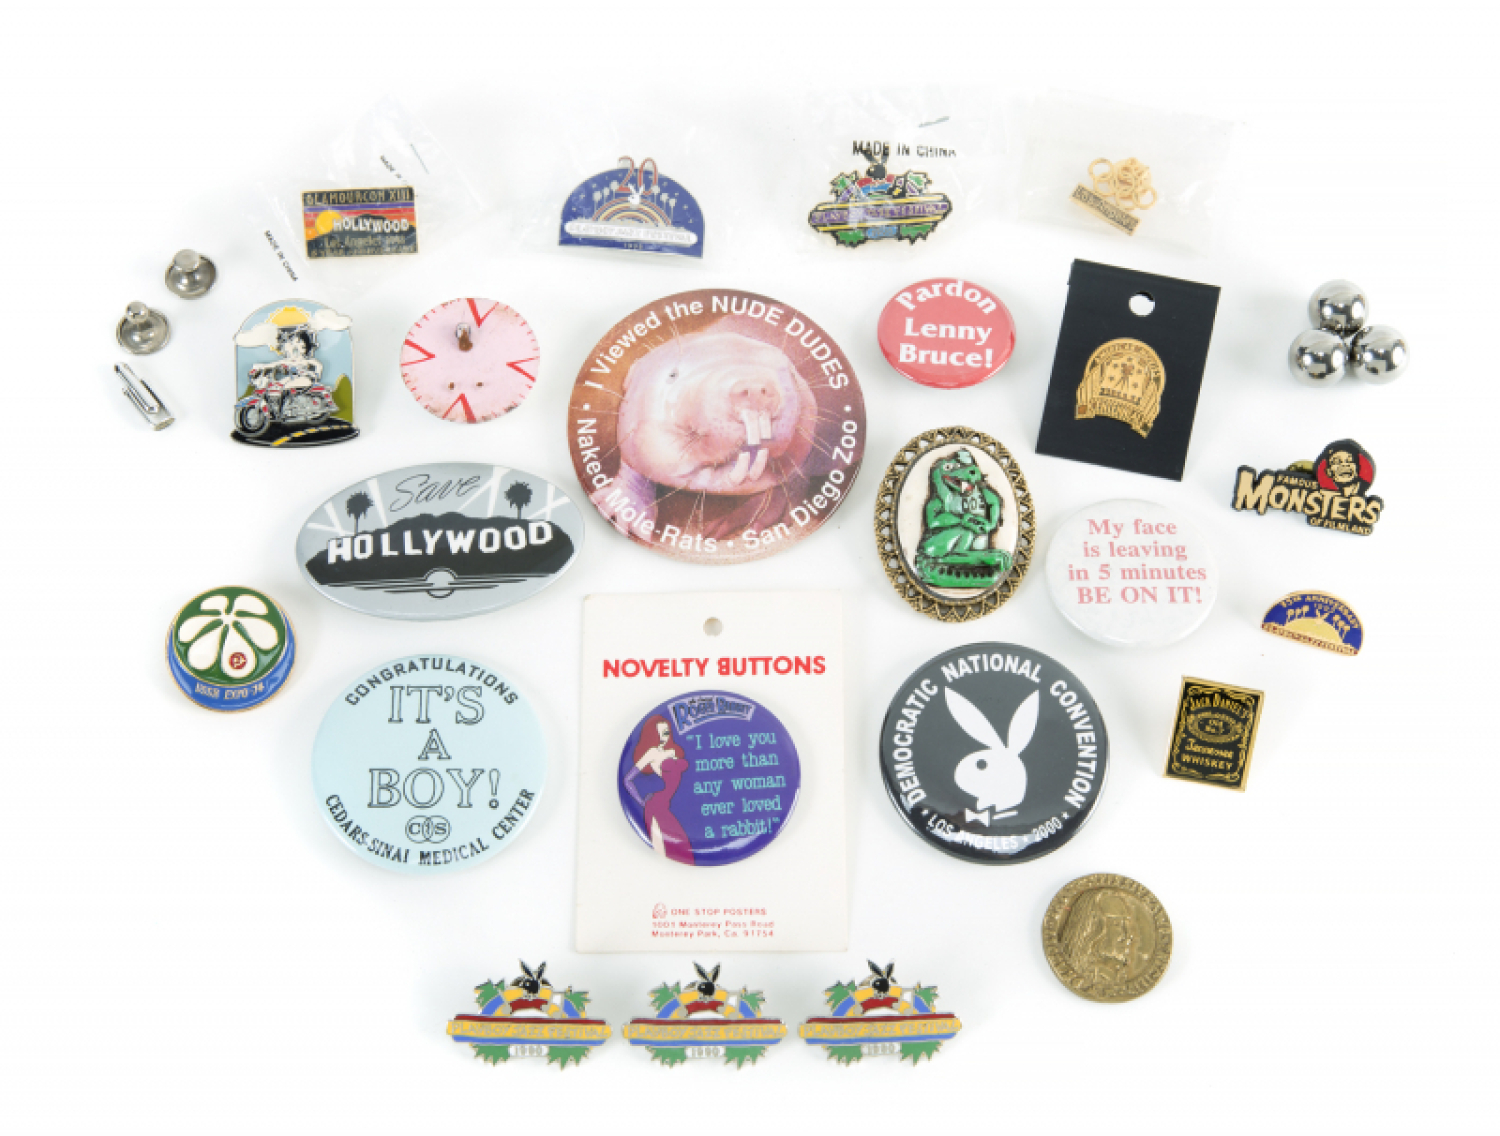 HUGH HEFNER ASSORTED NOVELTY BUTTONS AND PINS - Price